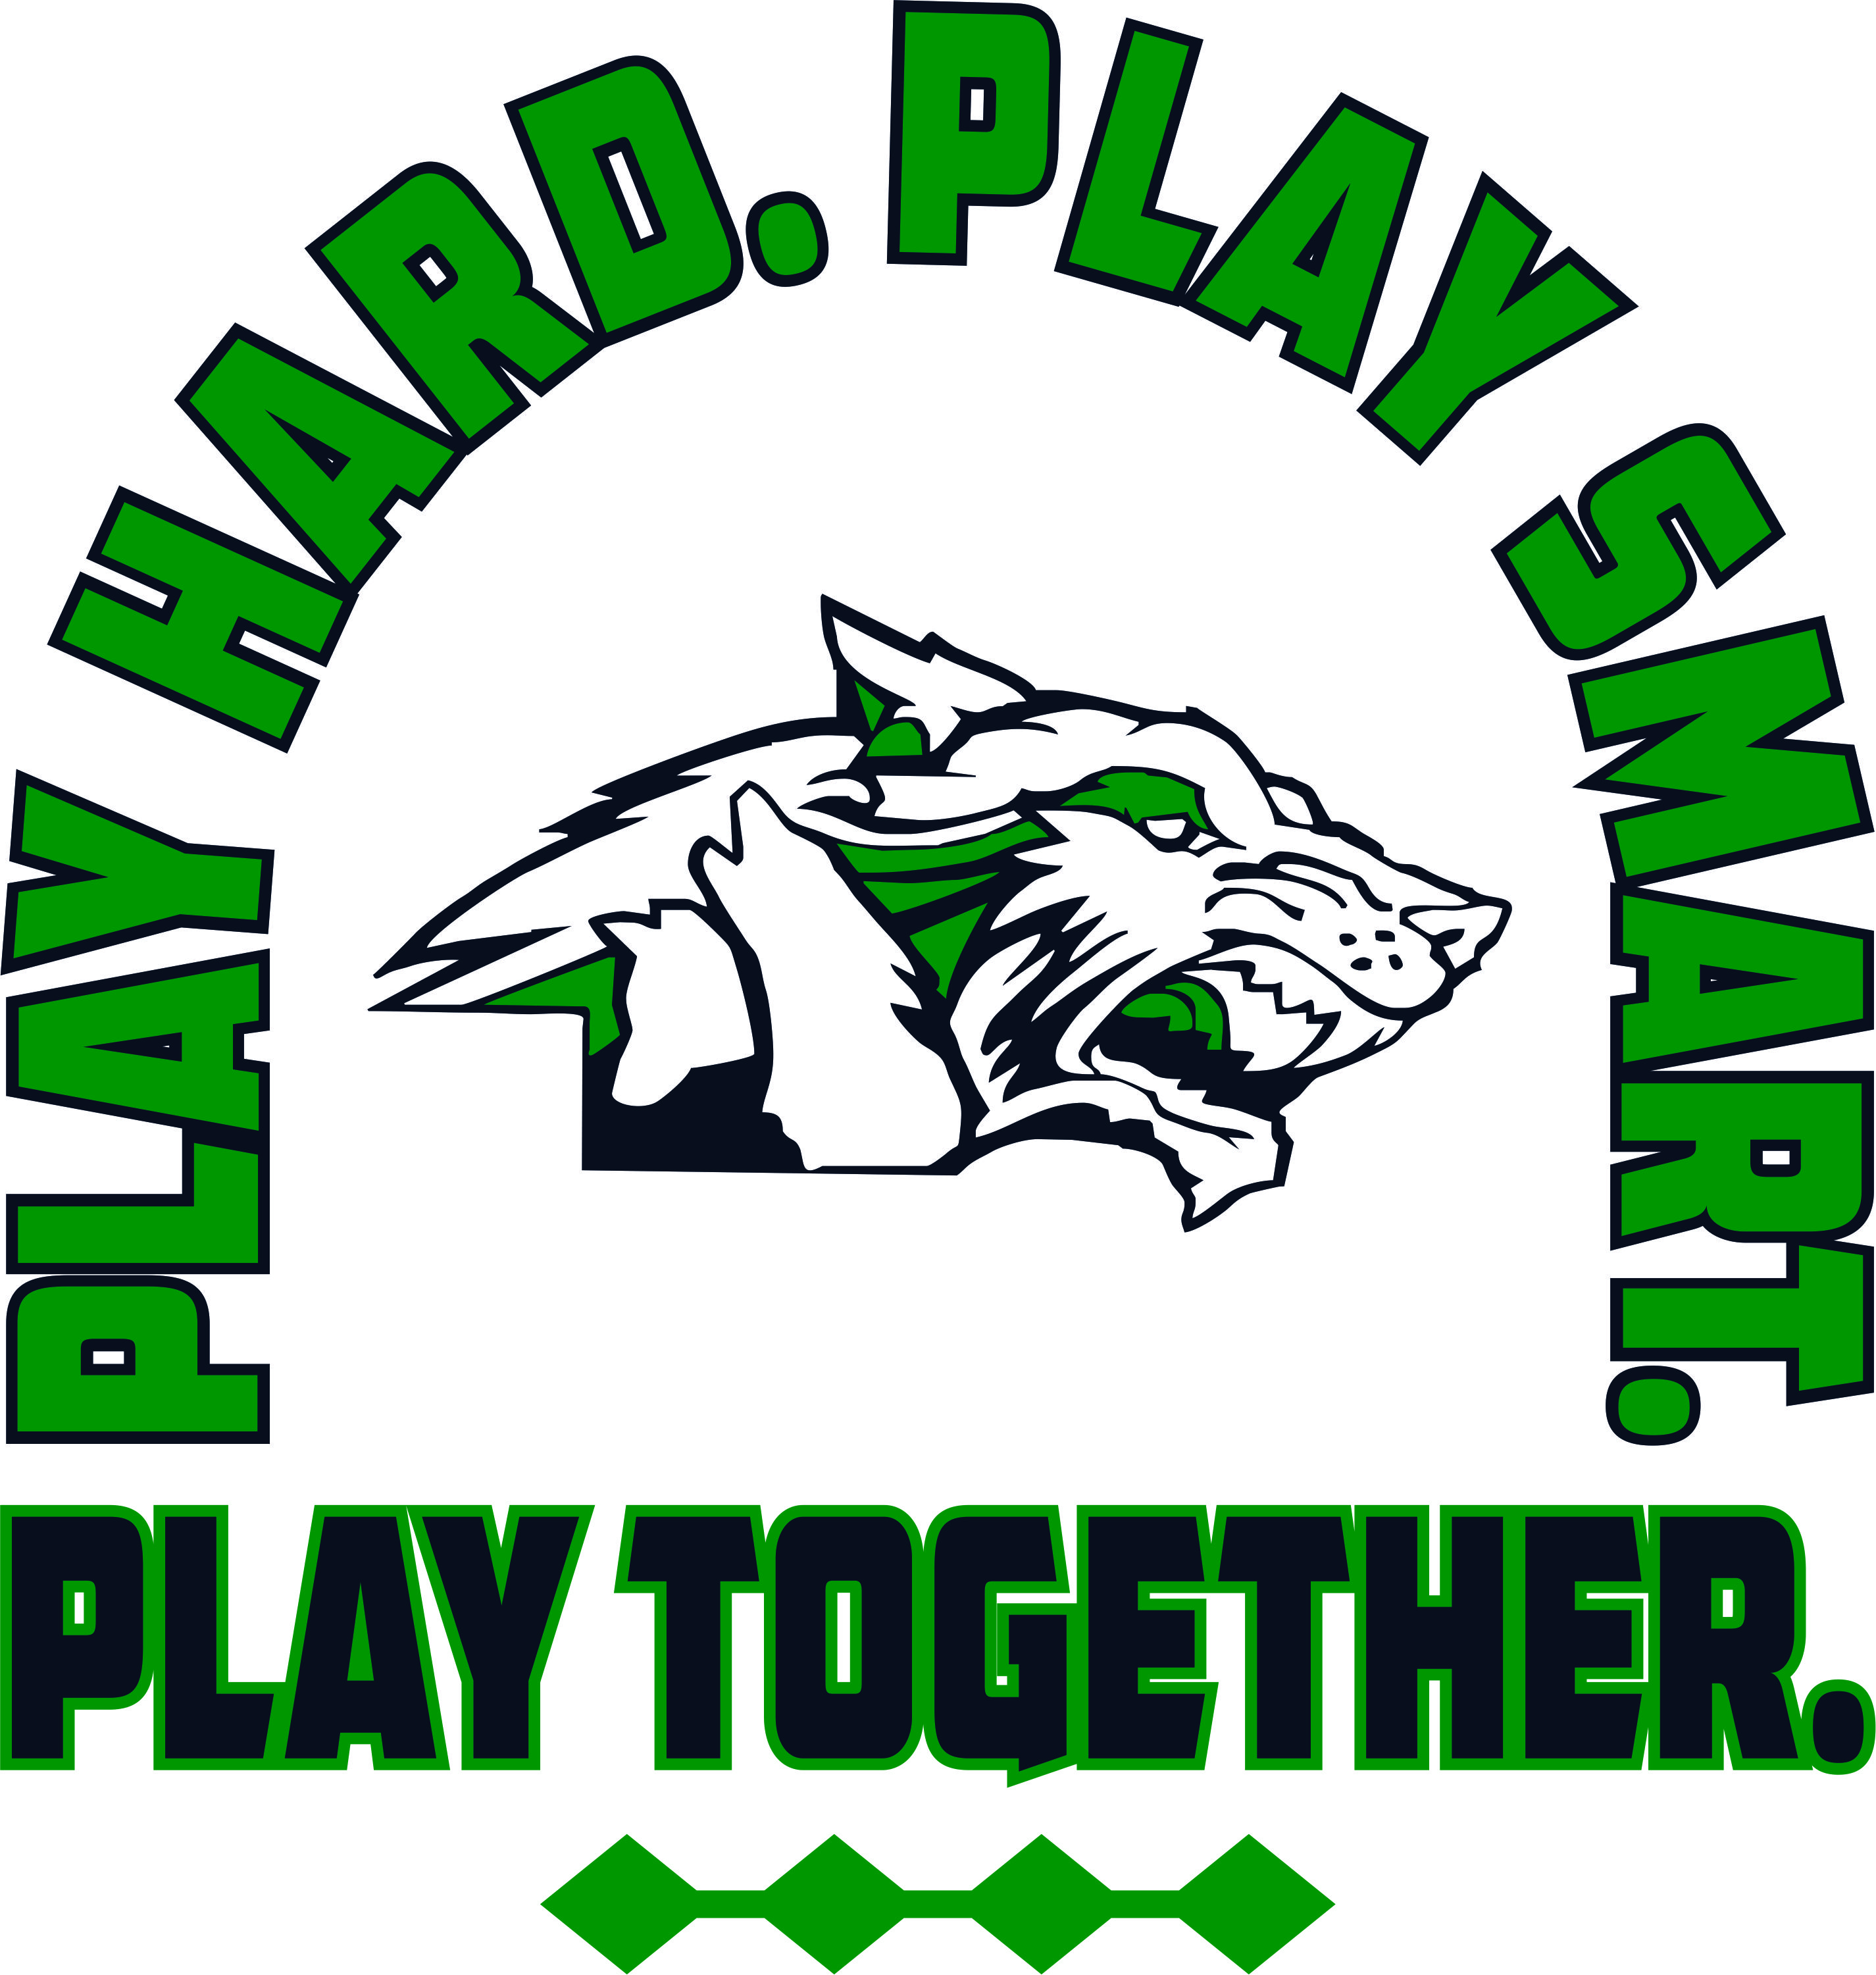 play hard, play smart, play together